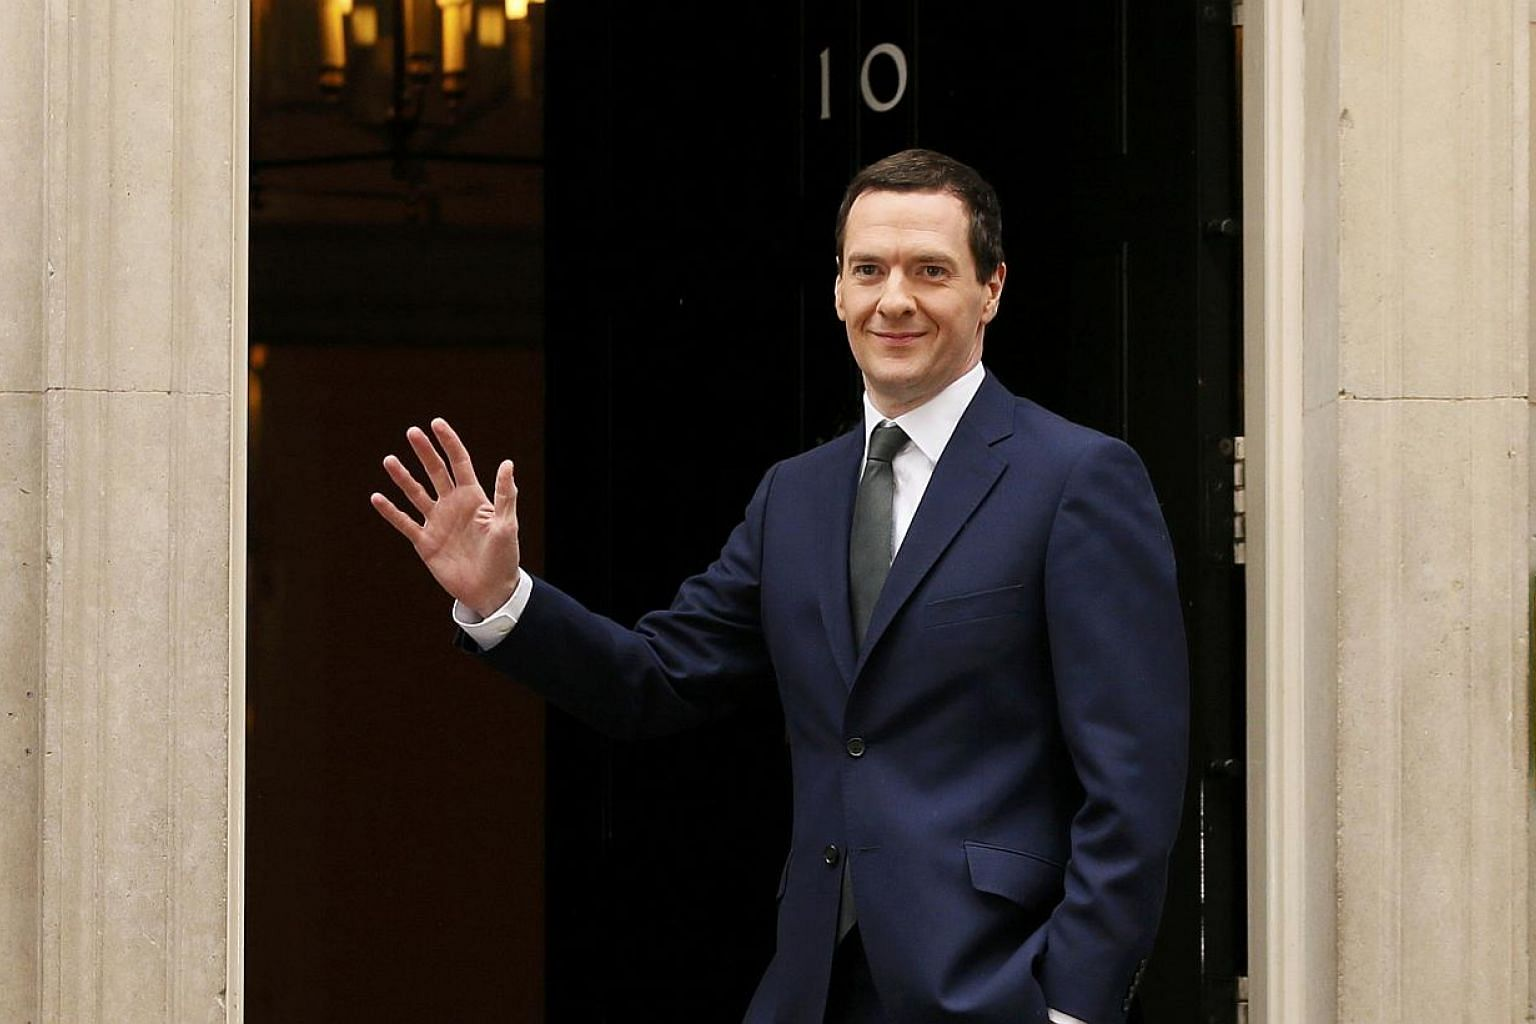 George Osborne arrives at 10 Downing Street as Britain's Prime Minister David Cameron begins to appoint his Cabinet after securing a majority goverment, in central London, May 8, 2015. -- PHOTO: REUTERS